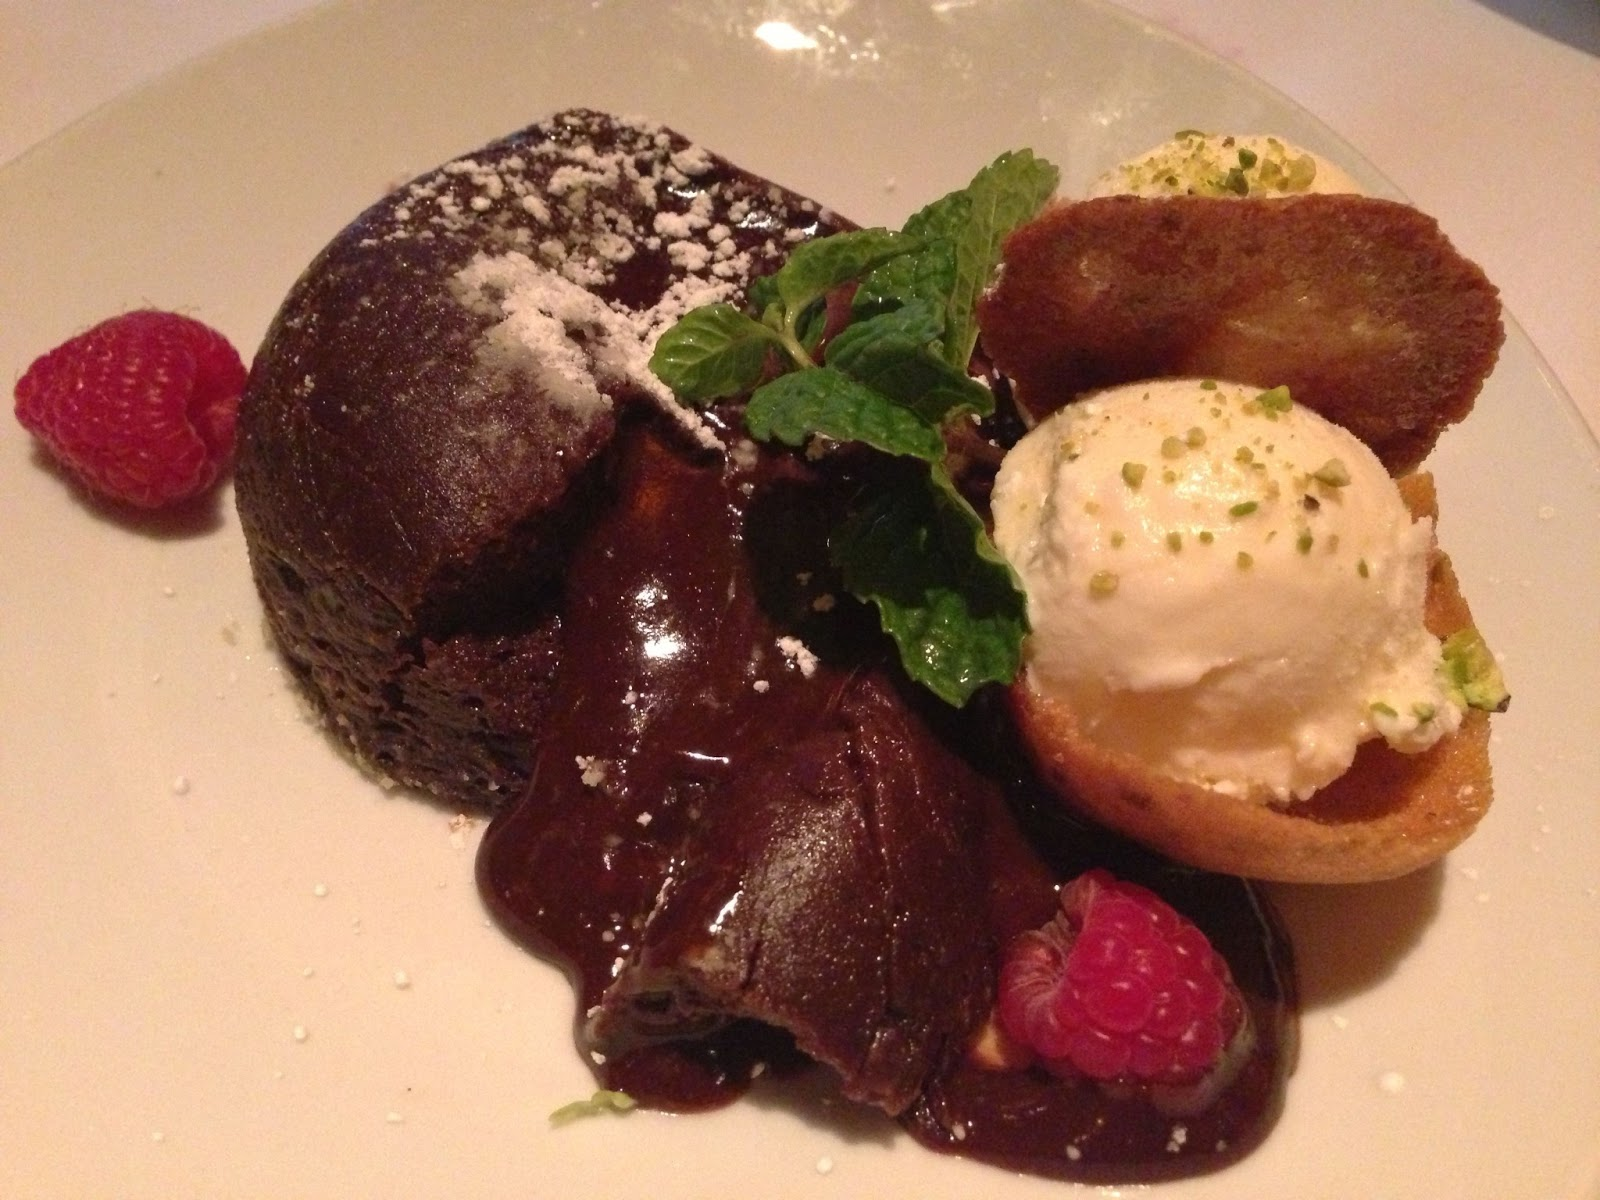 Wine Pairing With Chocolate Lava Cake